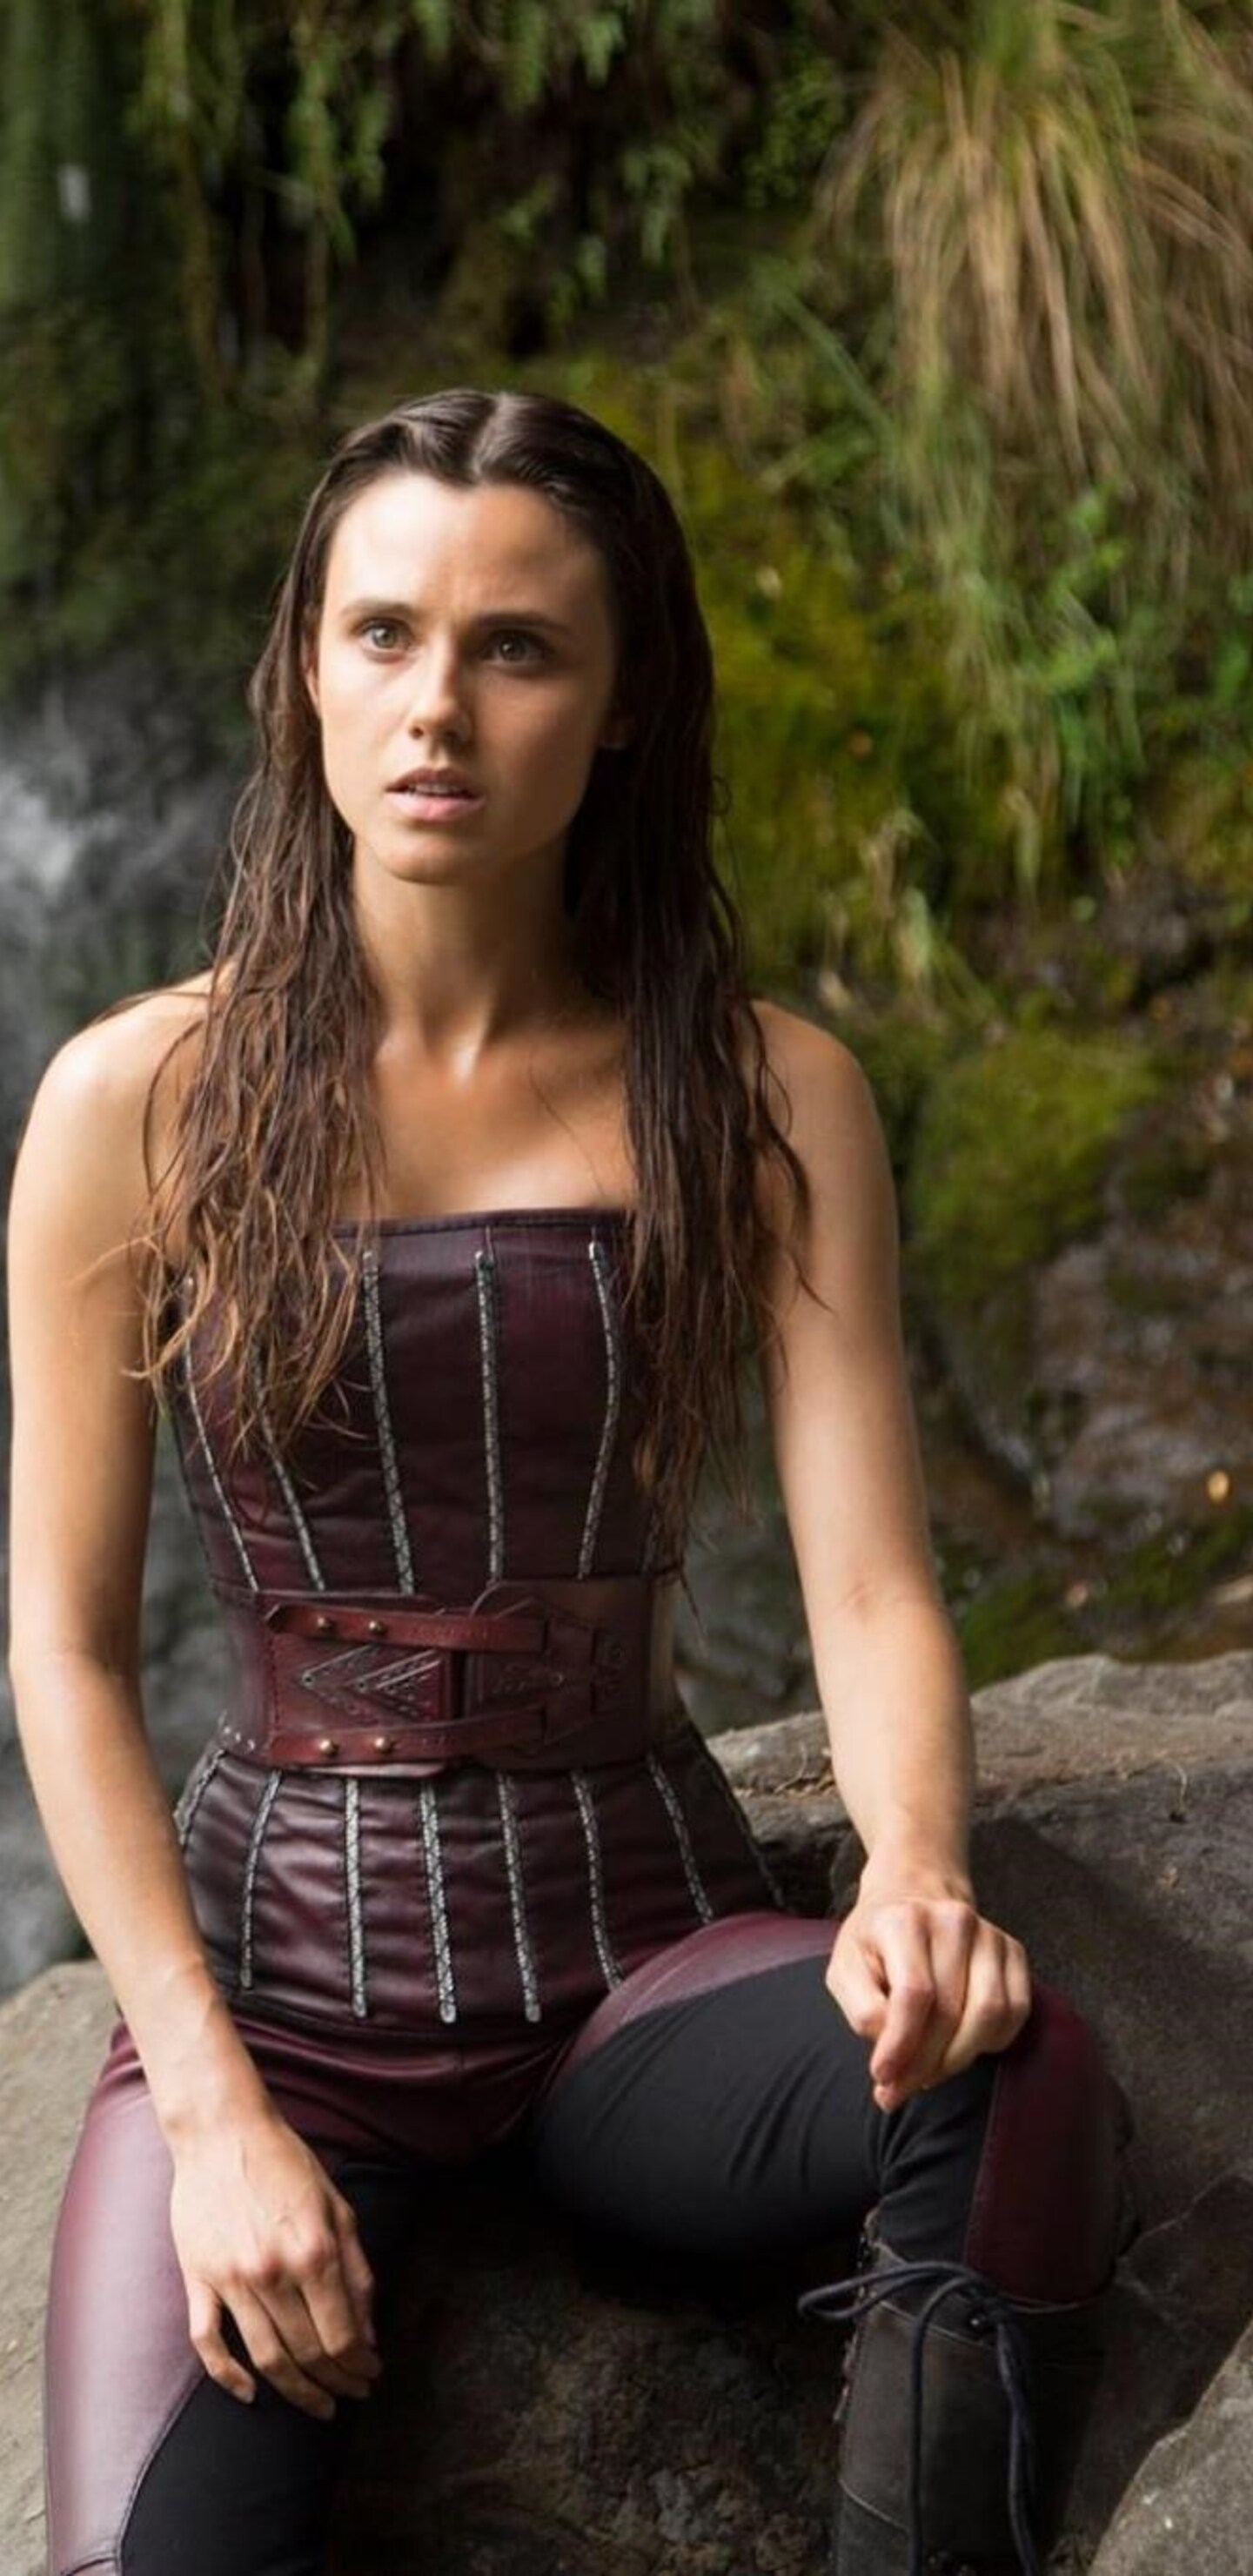 Samsung S8 3d Wallpaper Download 1440x2960 Poppy Drayton In The Shannara Chronicles Samsung